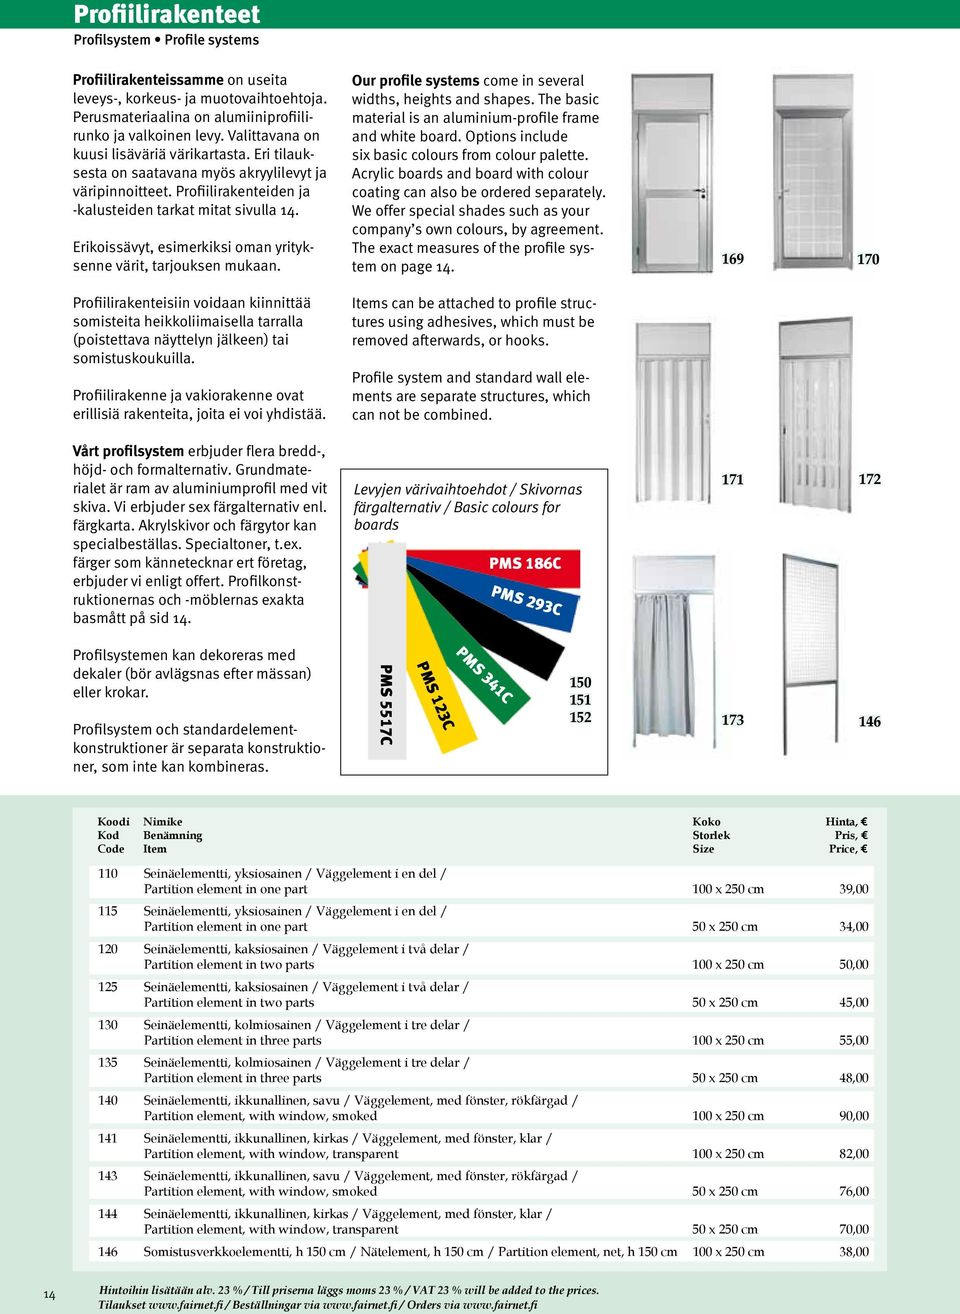 Erikoissävyt, esimerkiksi oman yrityksenne värit, tarjouksen mukaan. Our profile systems come in several widths, heights and shapes. The basic material is an aluminium-profile frame and white board.